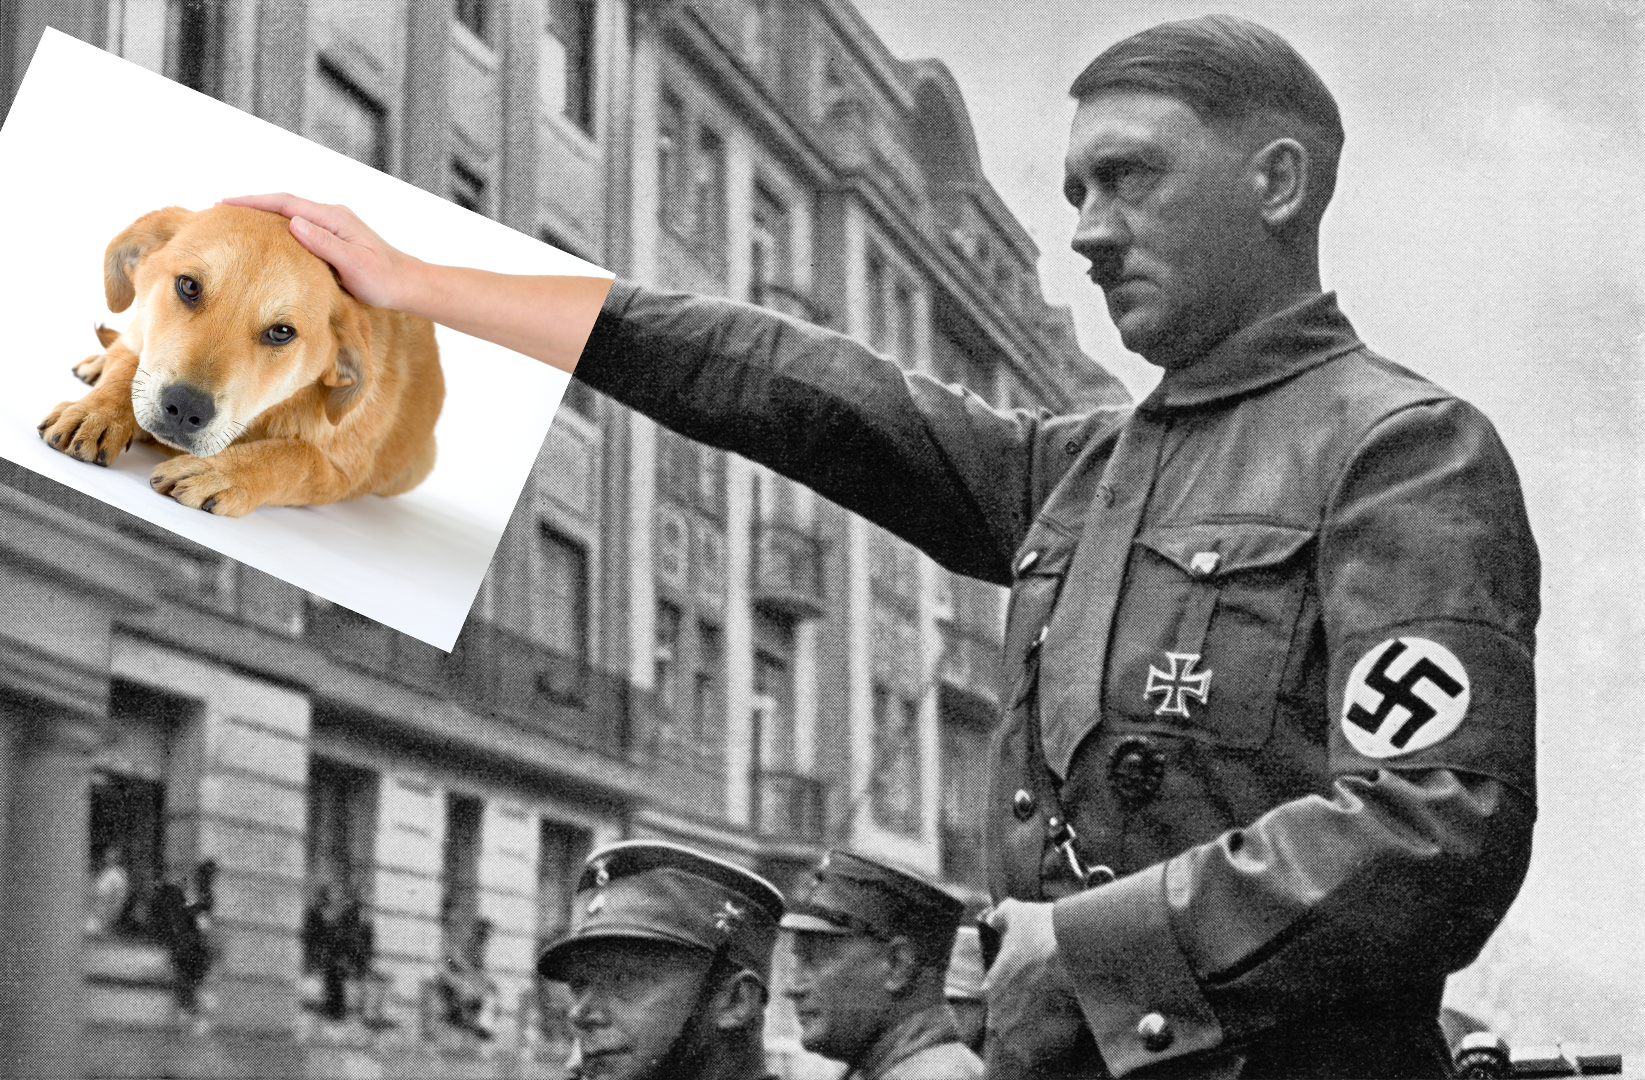 Hitler petting dog